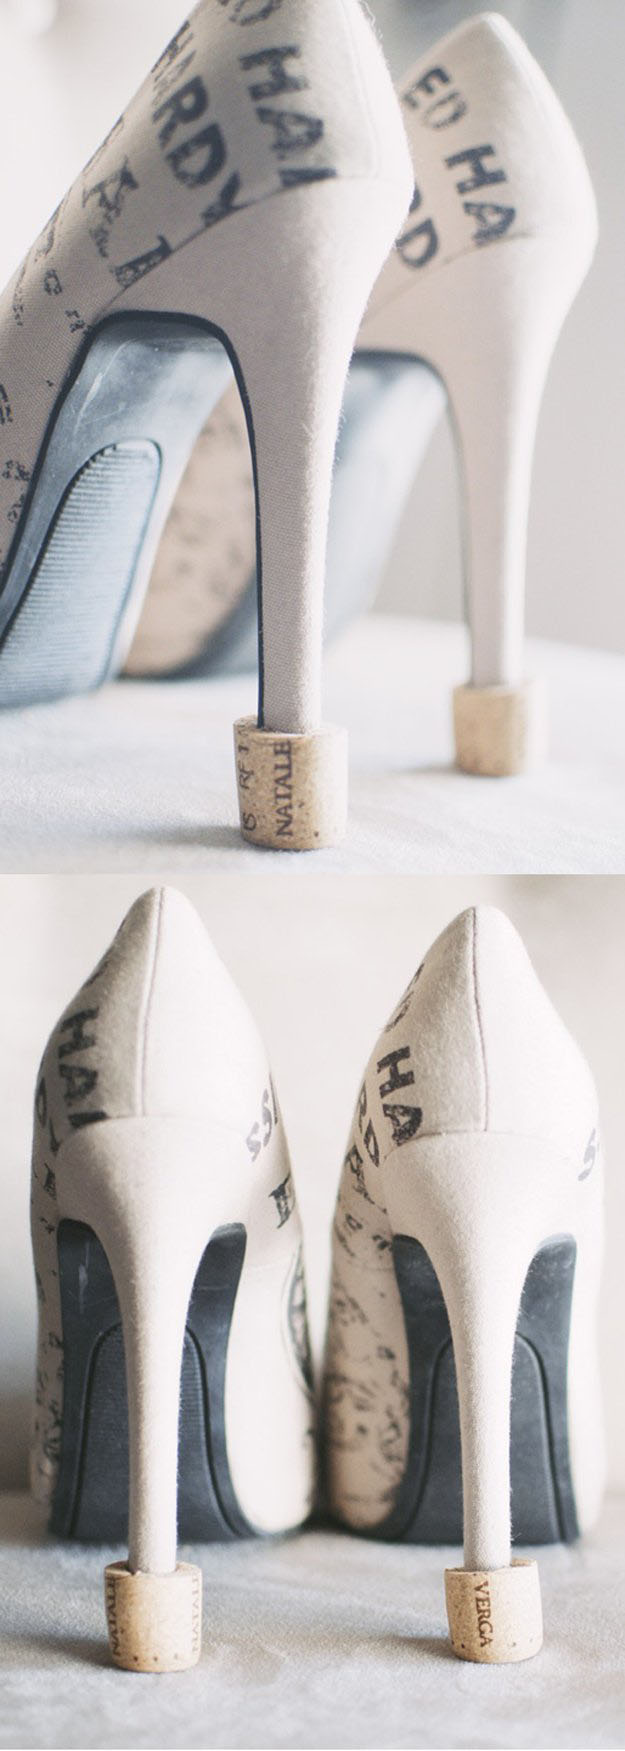 DIY Wine Cork Crafts for Easy Wedding Shoe Ideas - Wine Cork Shoe Savers - DIY Projects & Crafts by DIY JOY at http://diyjoy.com/diy-wine-cork-crafts-craft-ideas